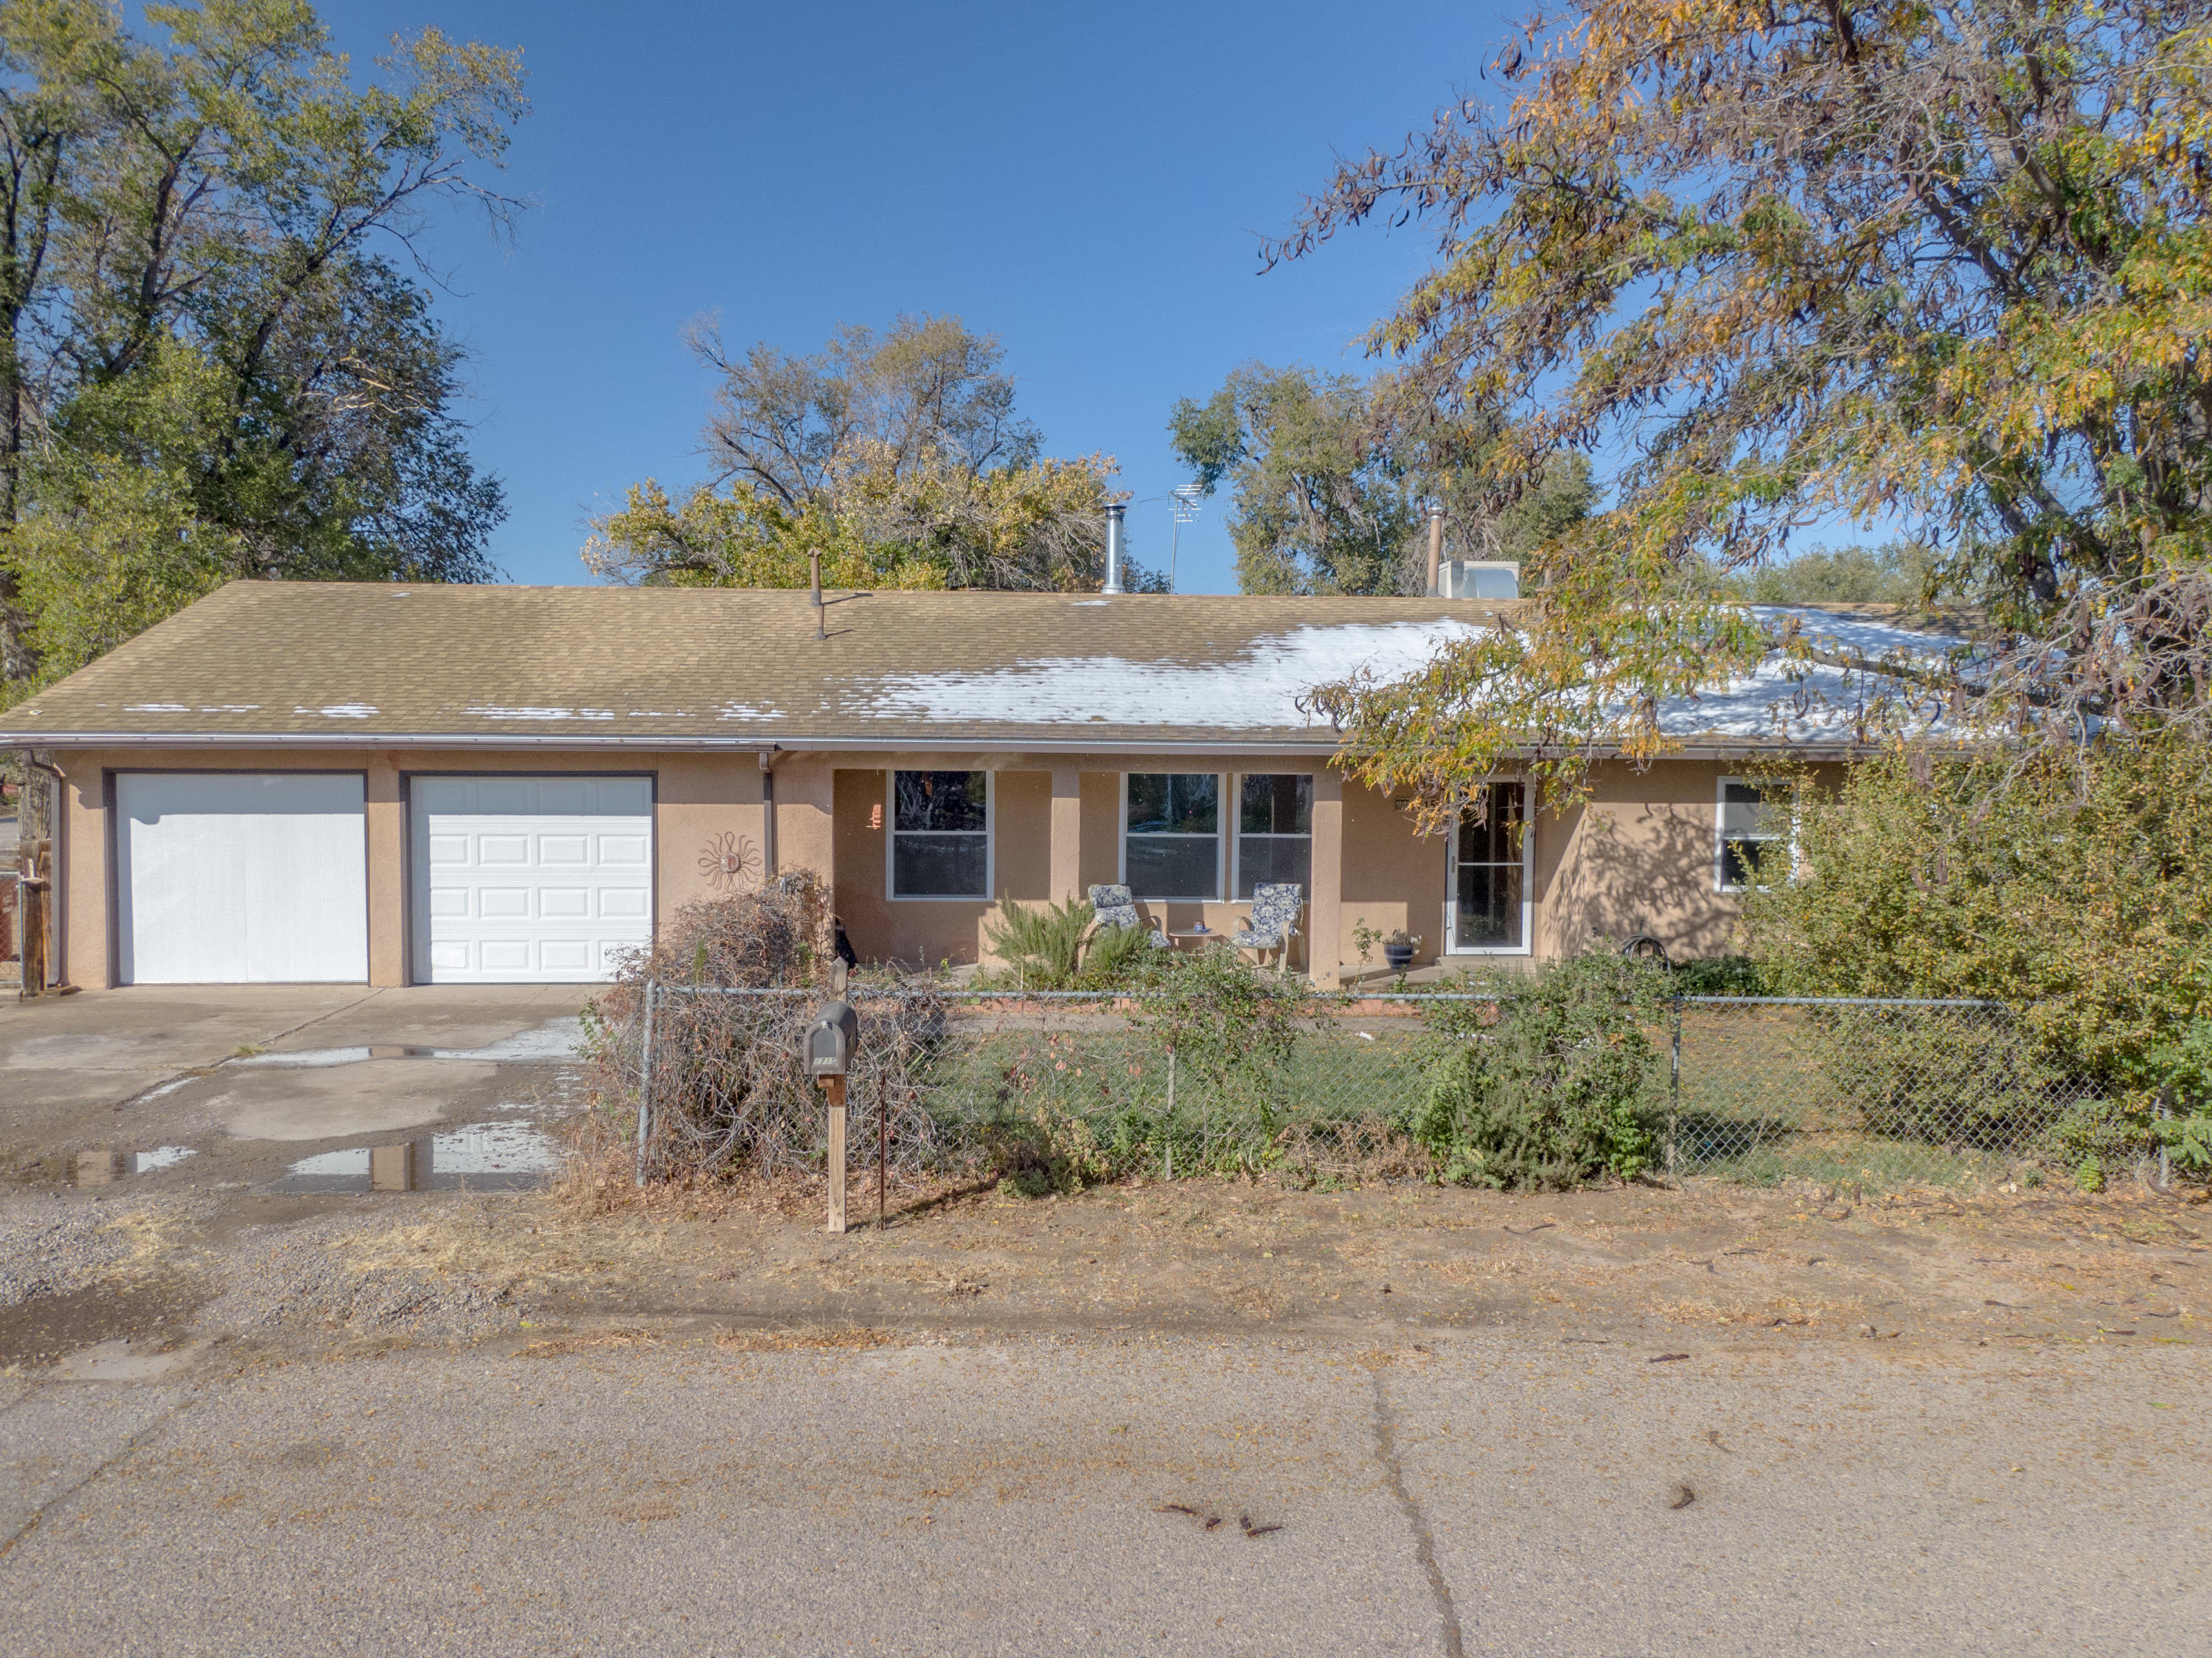 1715 PEARL Loop Property Photo - Bosque Farms, NM real estate listing